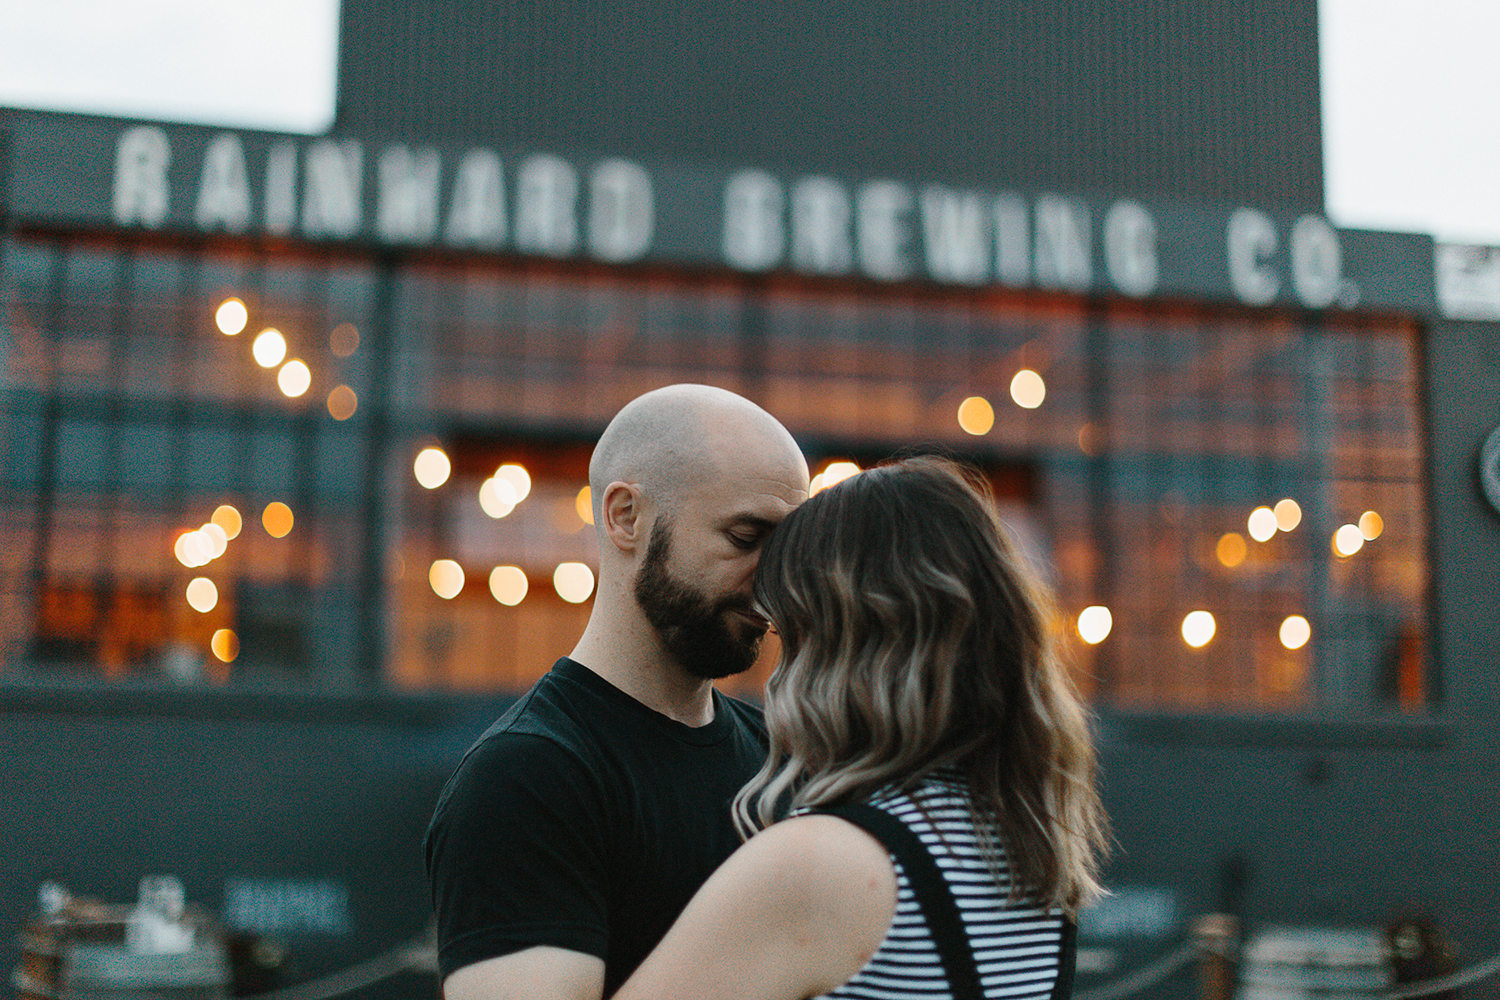 downtown-toronto-wedding-photographer-ryanne-hollies-photography-junebug-wedding-documentary-candid-alternative-engagement-session-cool-trendy-hipster-engagement-session-inspiration-intimate-cute-love.jpg